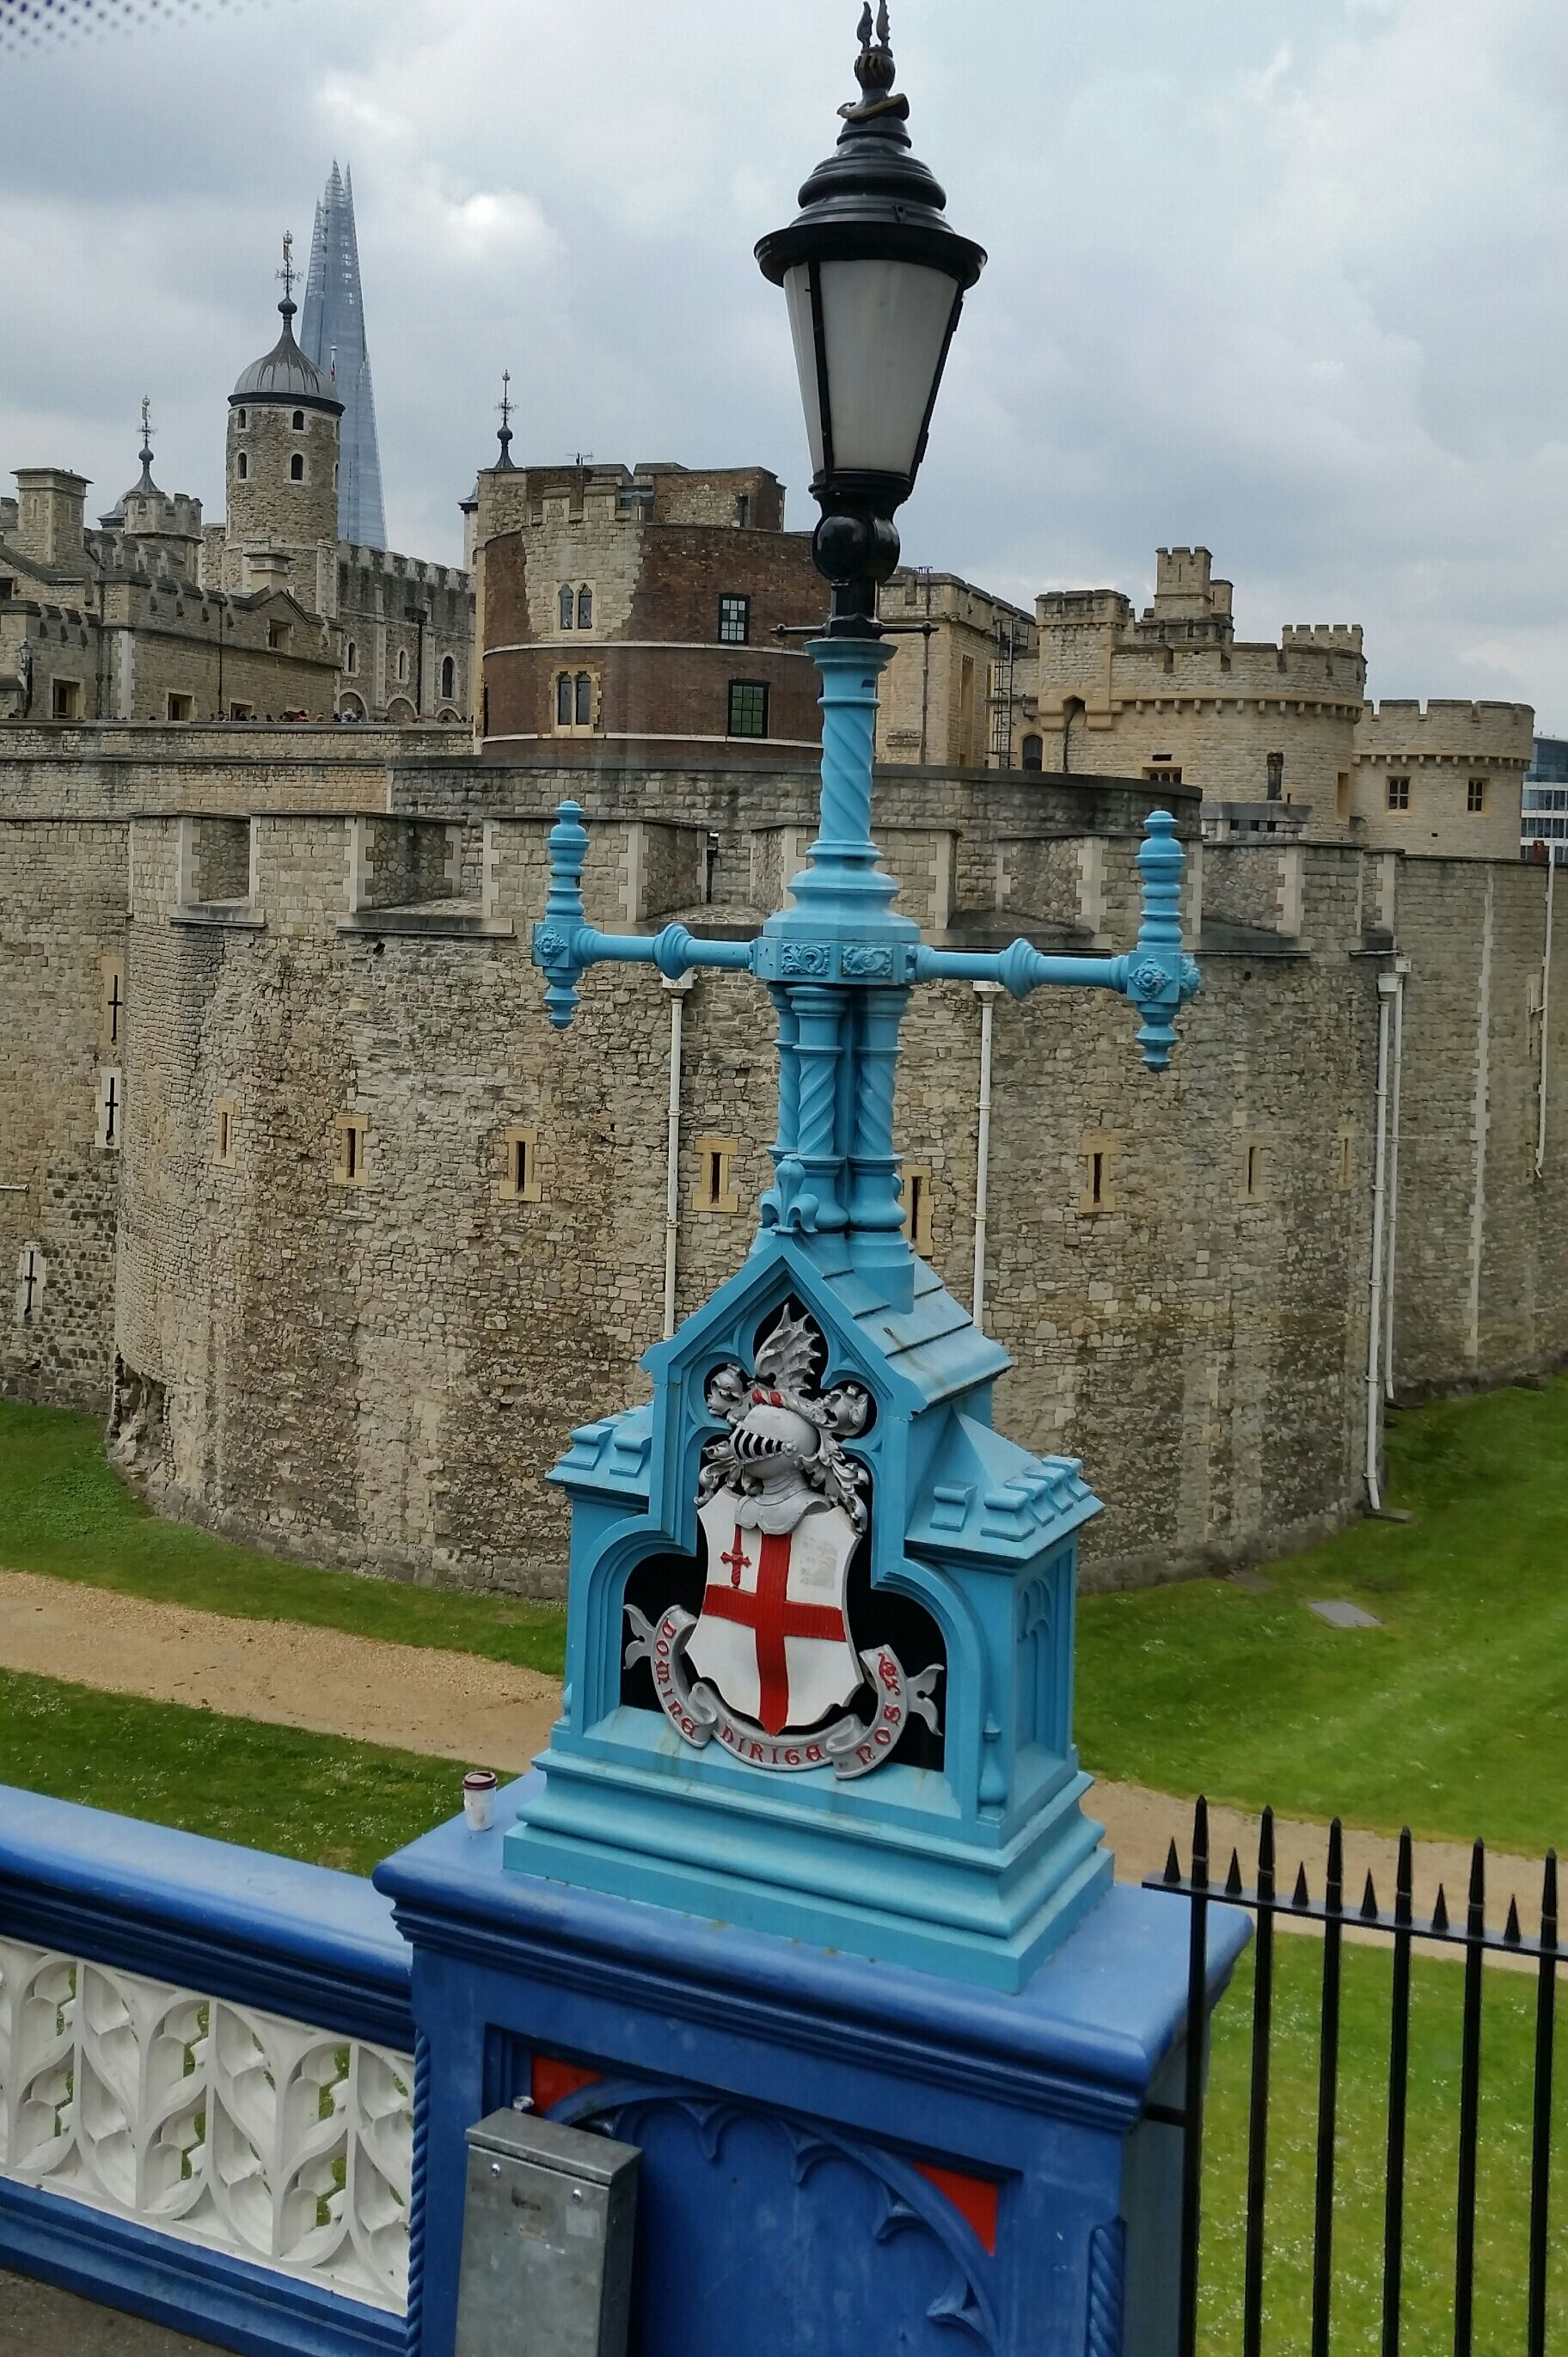 View of the Tower of London from Tower Bridge